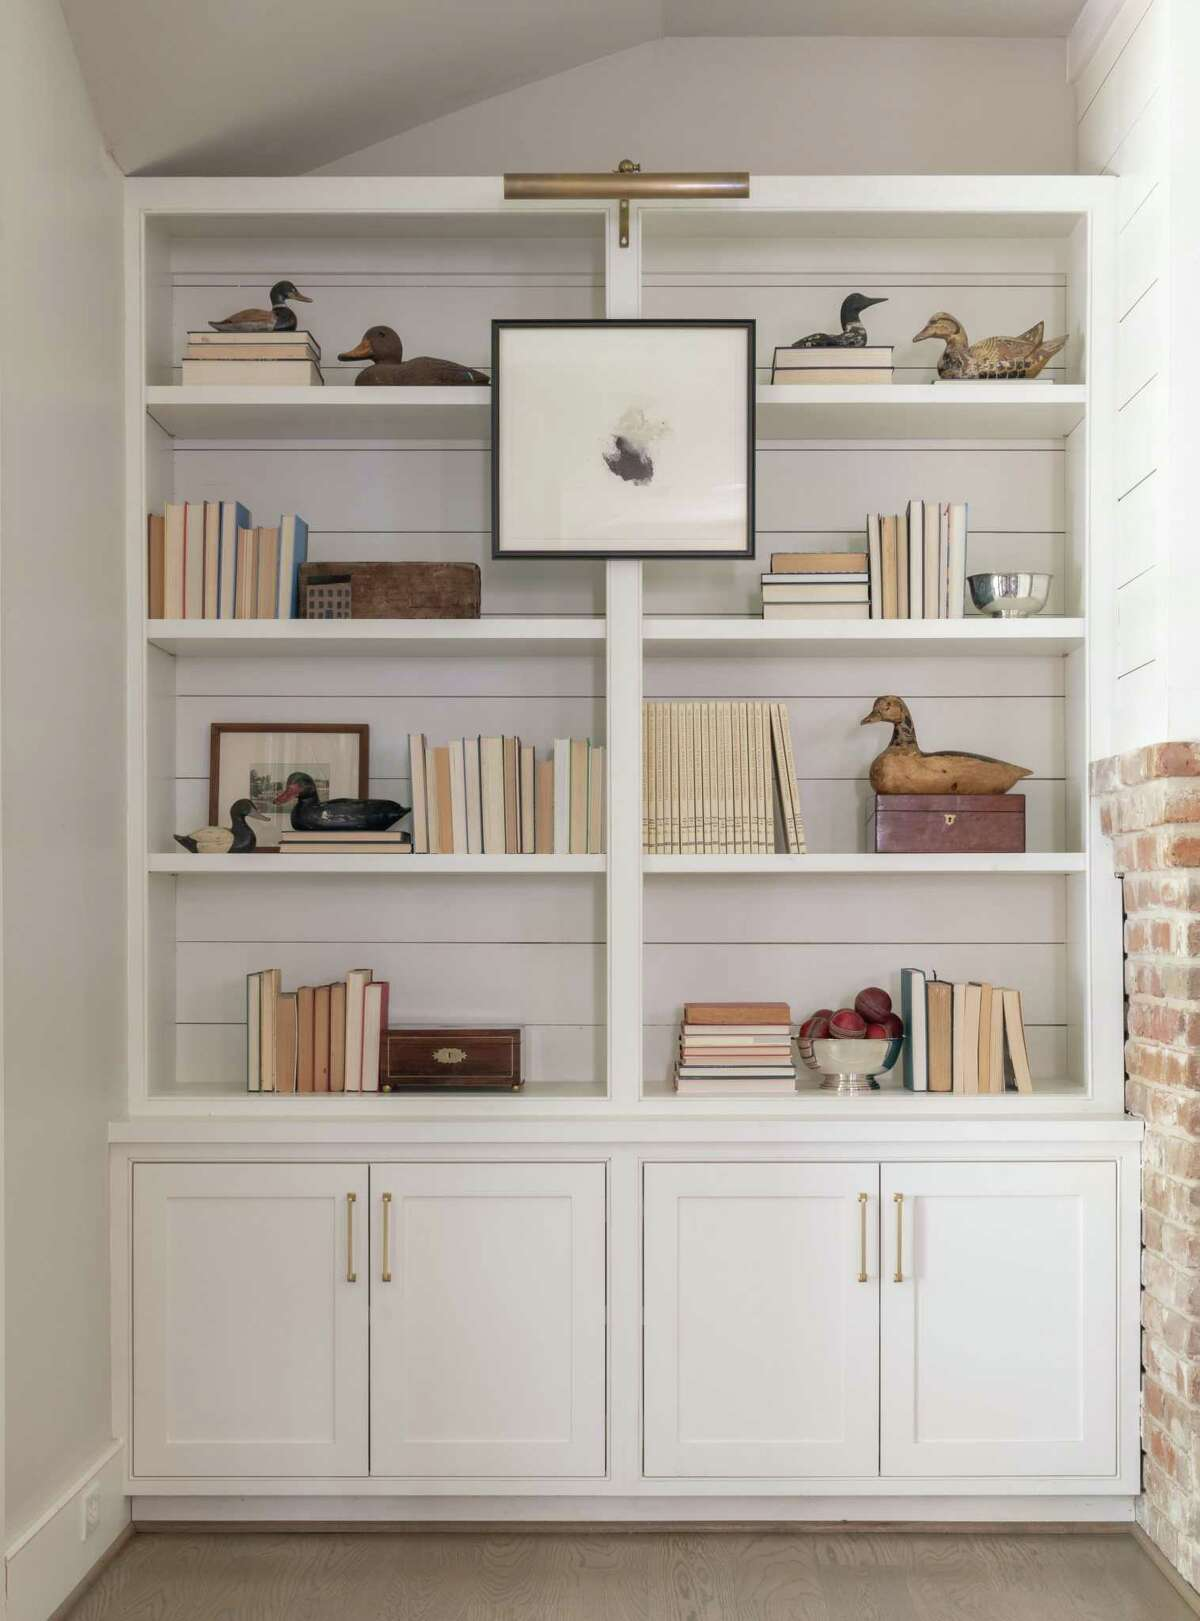 For a monochromatic look, turn books backward so their spines face the wall.